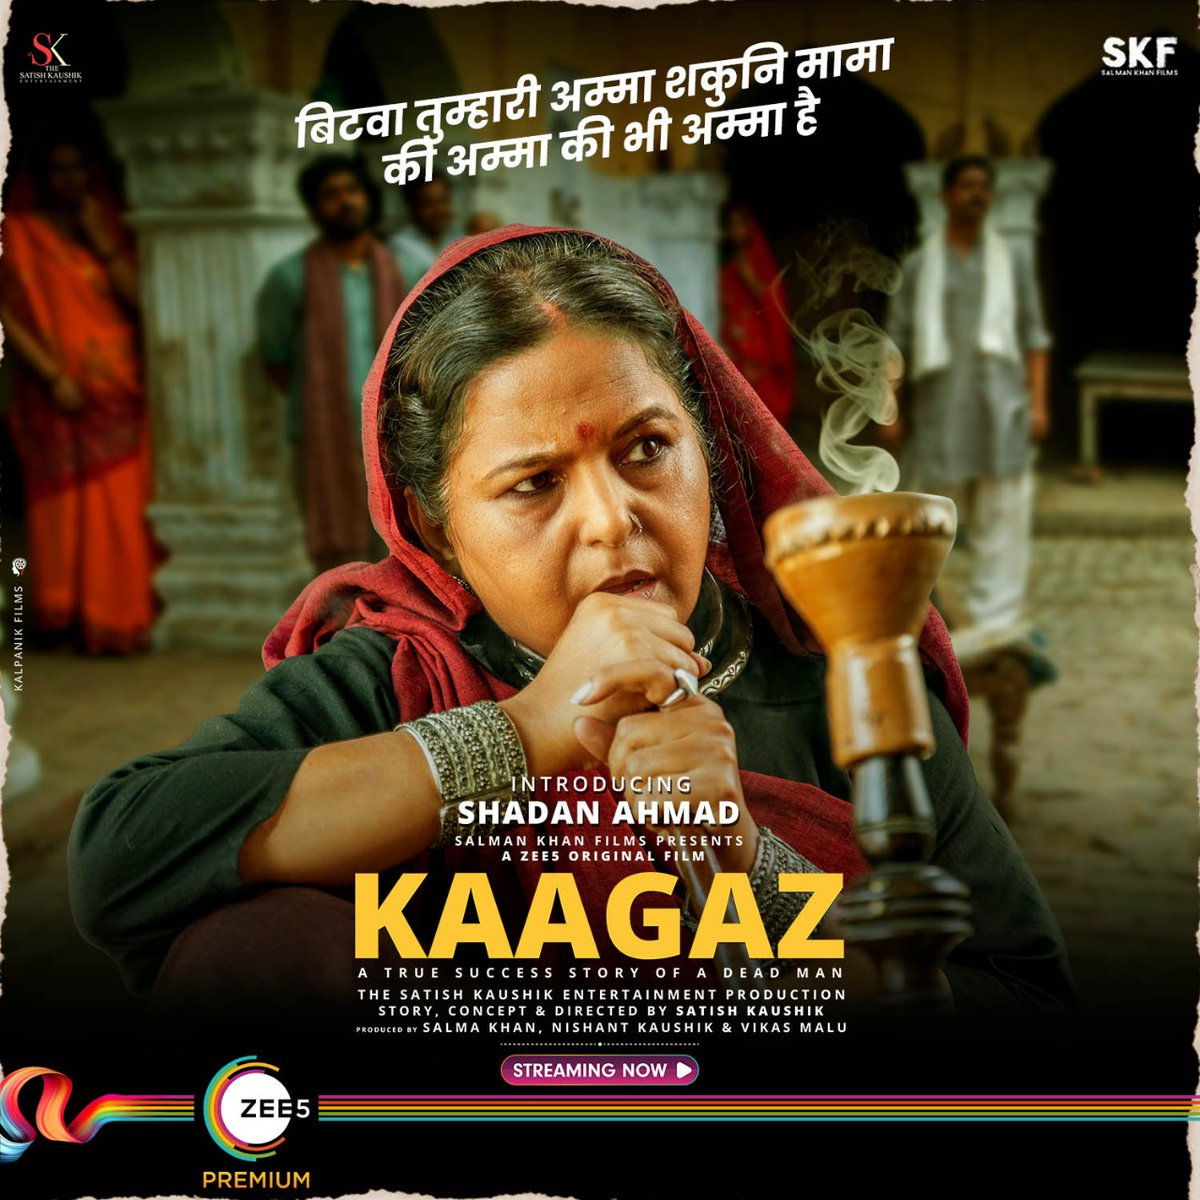 """Thank You Shadan Ahmad for being such an important part of #Kaagaz. You played the character of """"Chachi"""" so convincingly and brilliantly considering it's your debut screen appearance. Wishing you a bright and shinning future ahead 🙏🏻😊 @shadana37342019"""